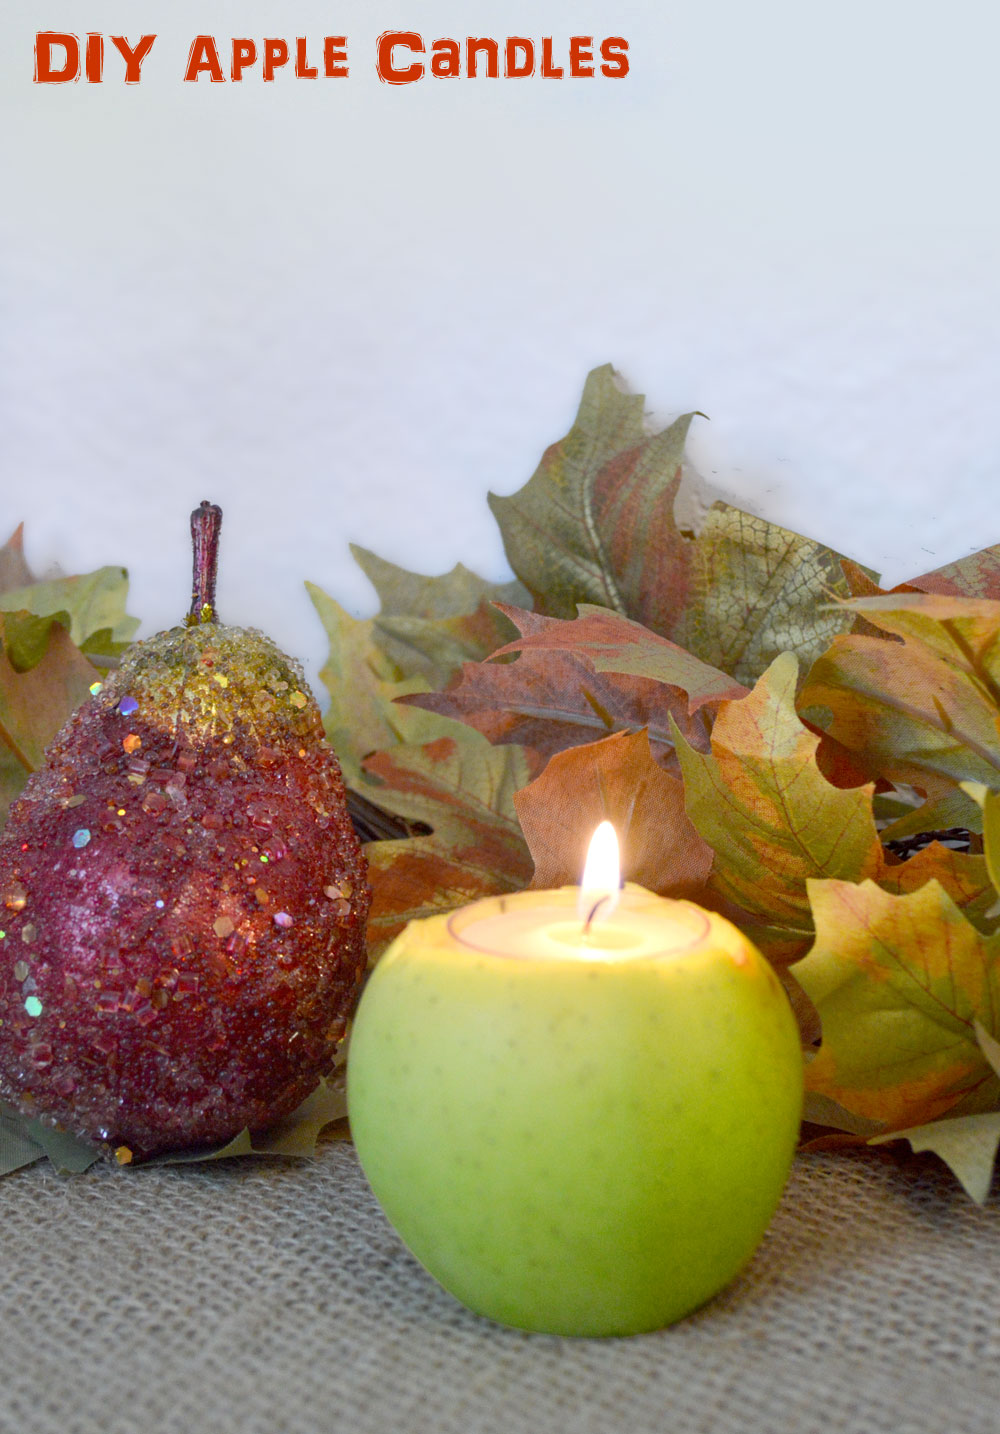 Easy DIY Apple Candles & Festive Fall Decor - Mommy Scene